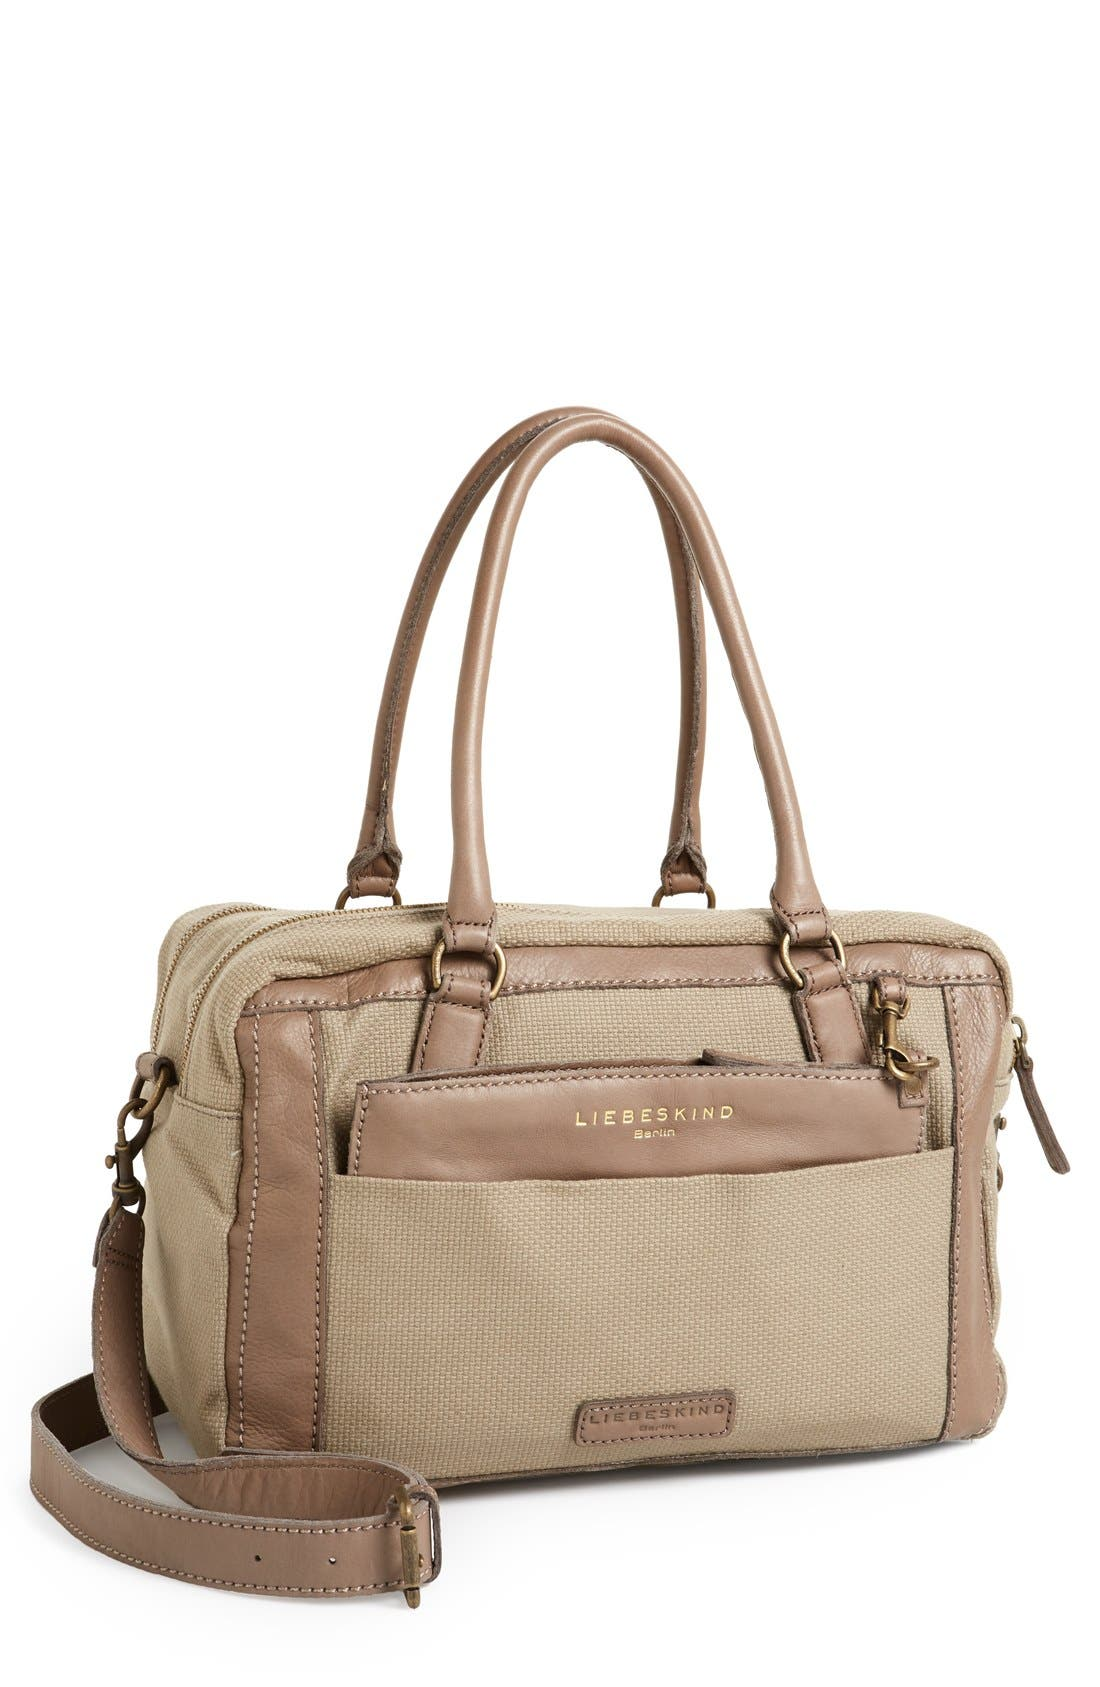 Main Image - Liebeskind 'Toska' Canvas & Leather Satchel